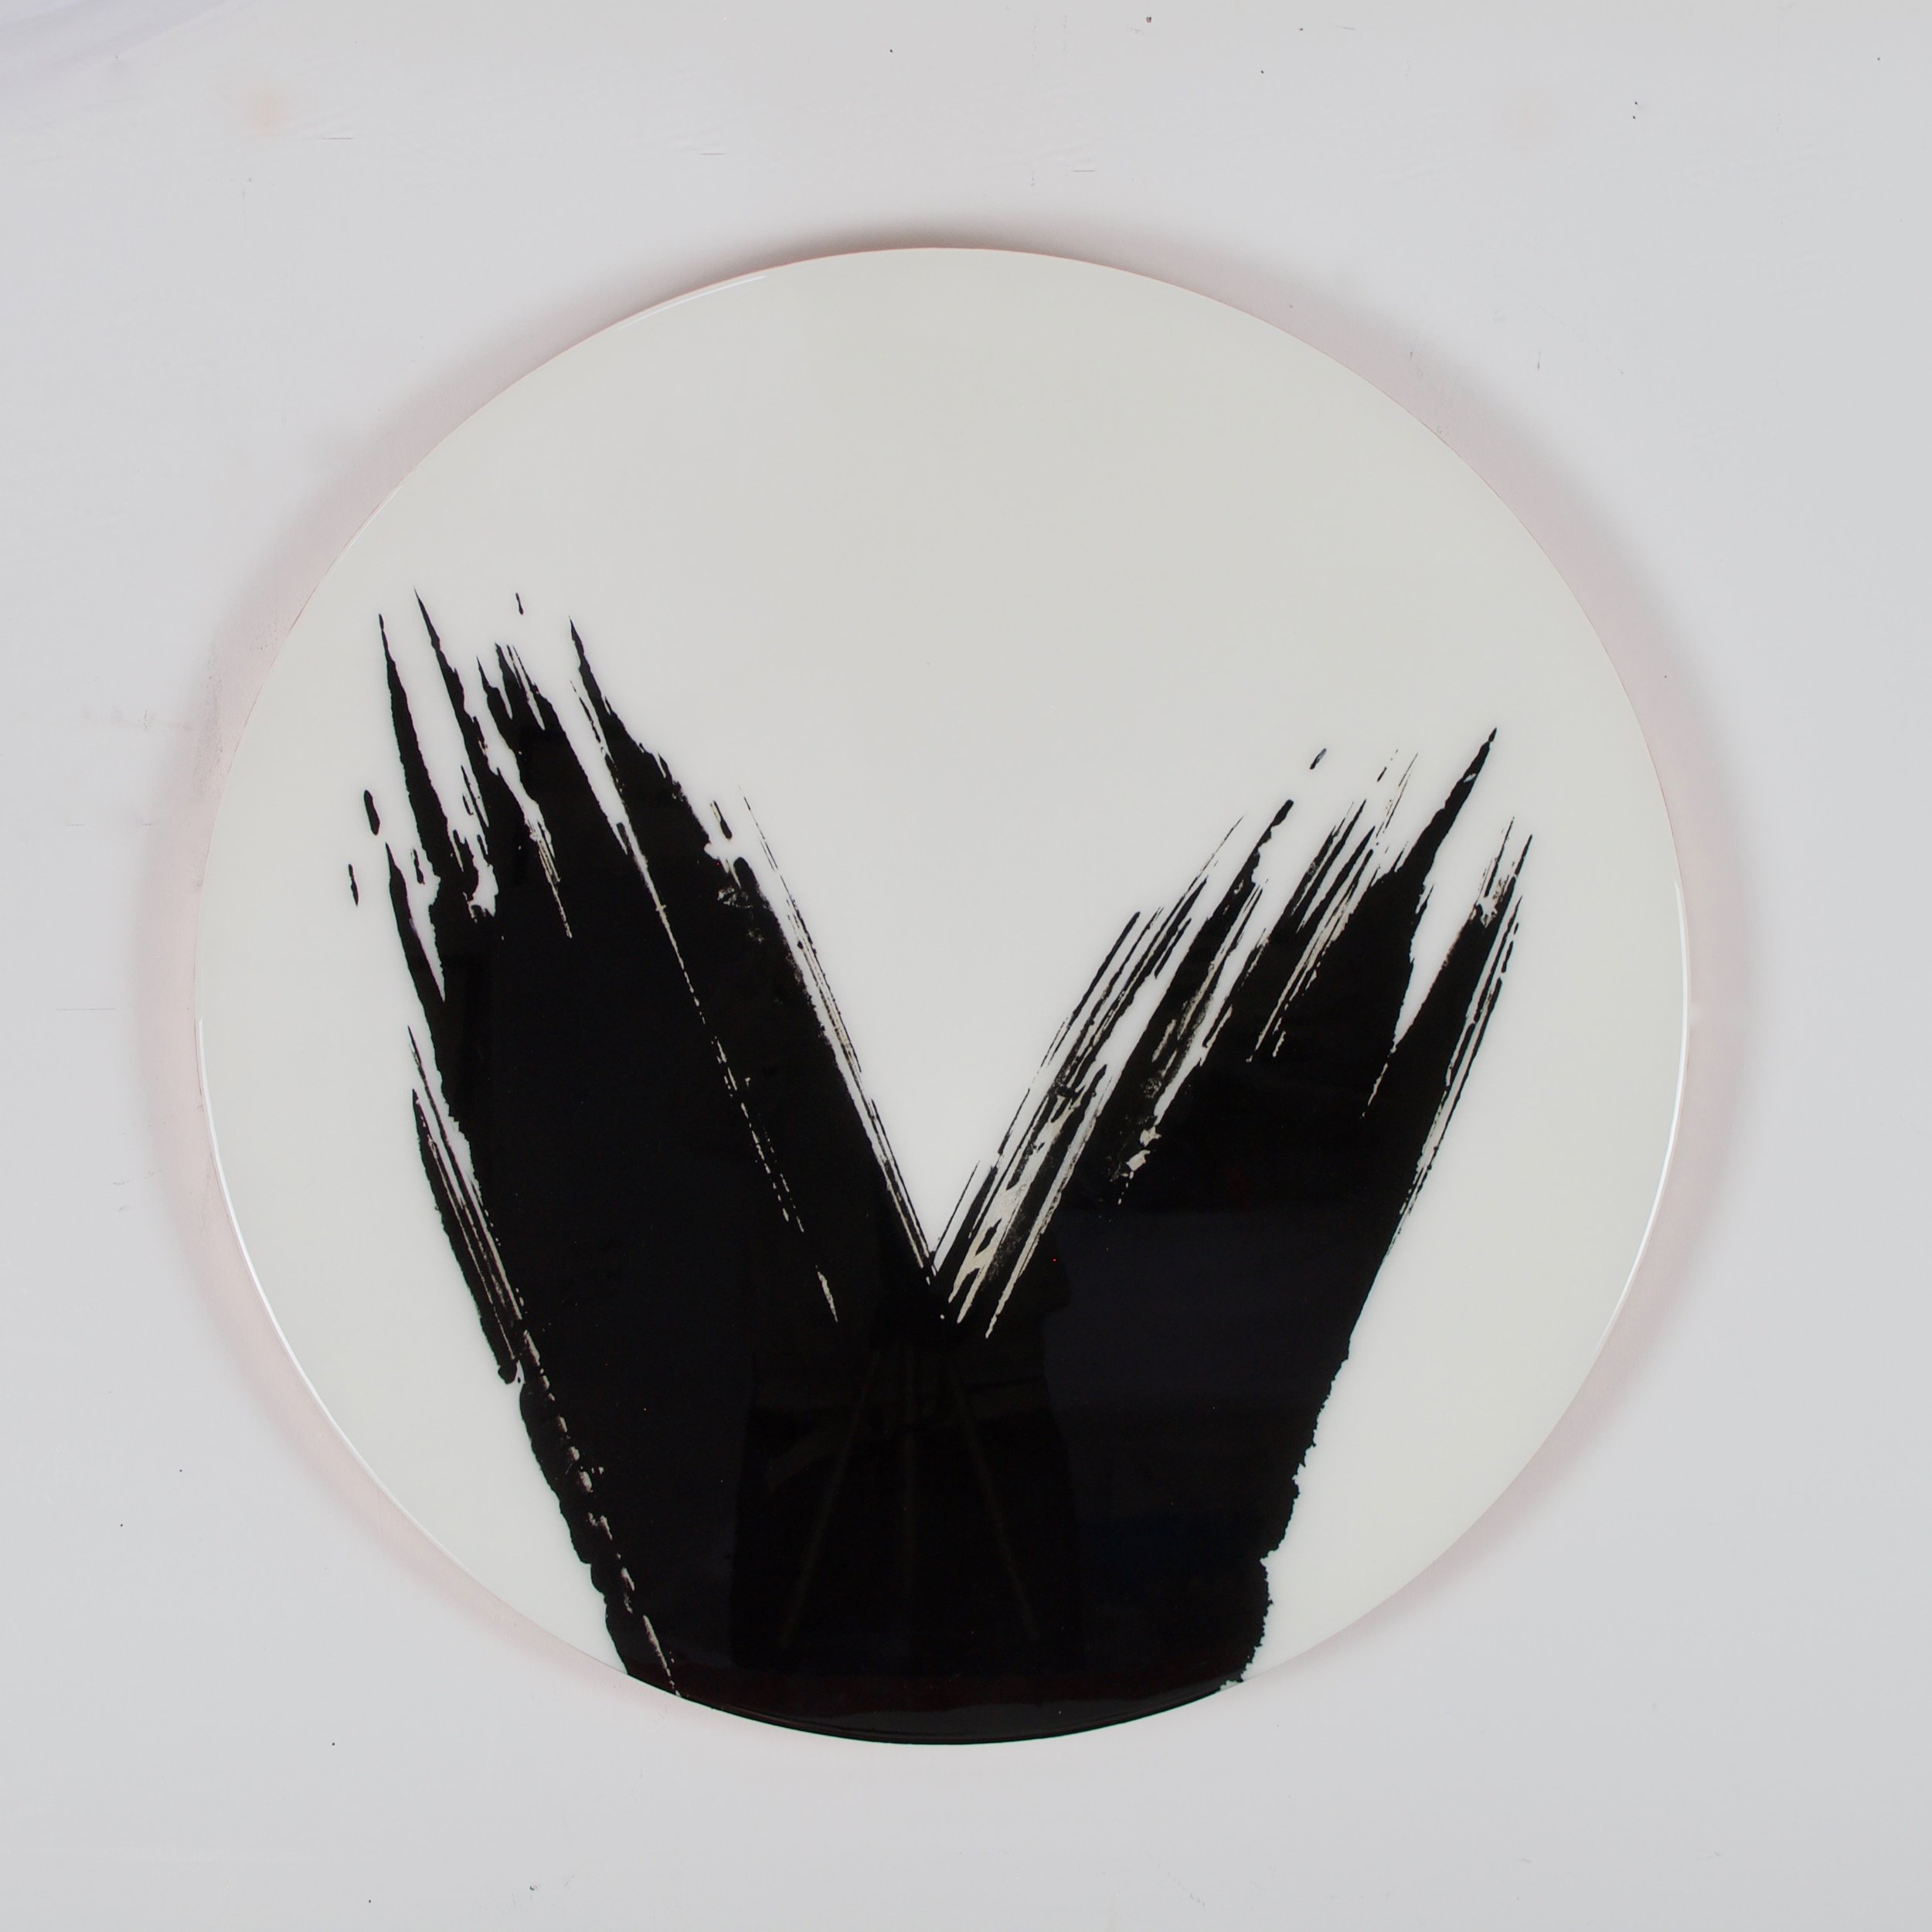 What If?, 2018_Rod McIntosh_Indian ink on Chinese mulberry paper, on Fabriano cartridge (120gsm) on Birch panel, copper leaf, resin coated_80cm diameter a 28mm.jpg